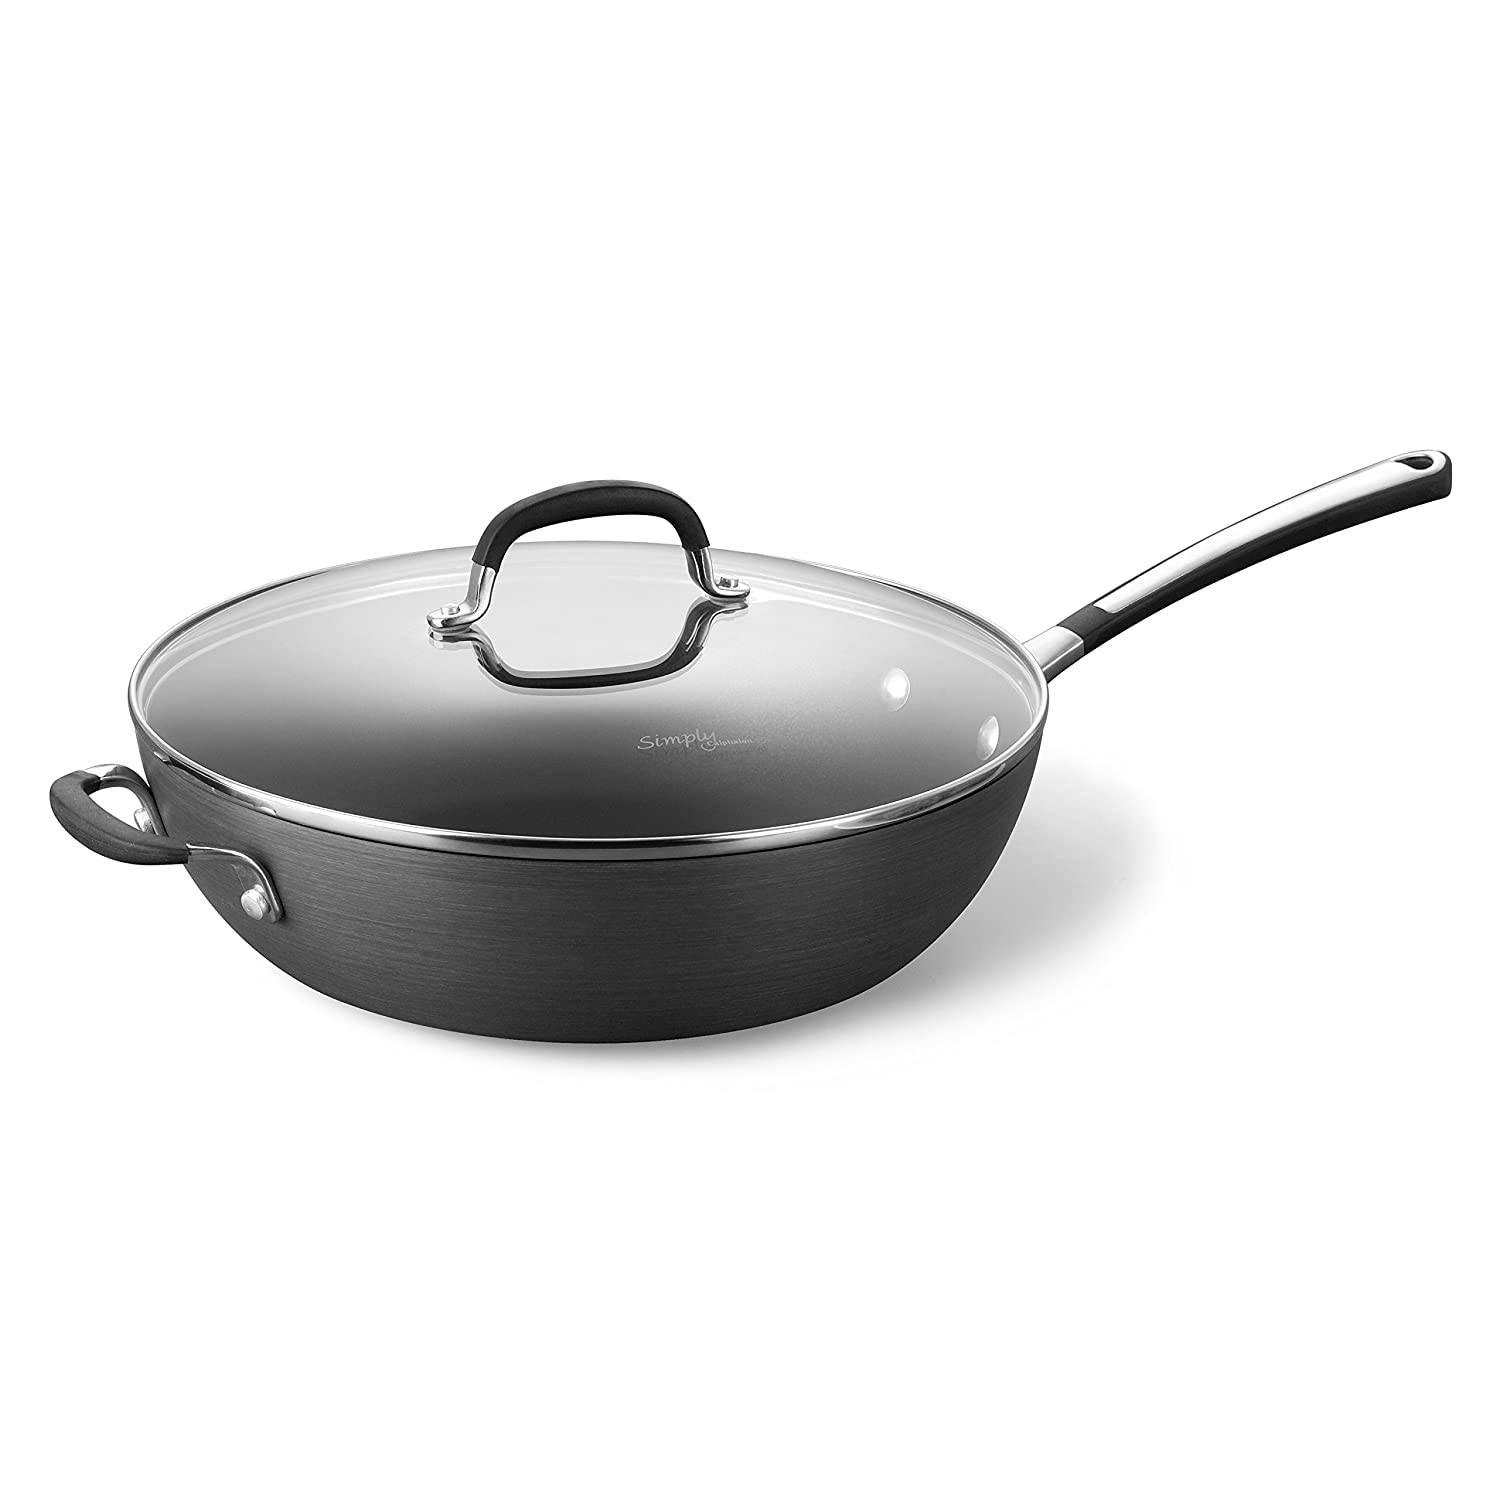 Simply Calphalon Nonstick 12 Jumbo Deep Fry Pan Calphalon Cookware SA1612HP